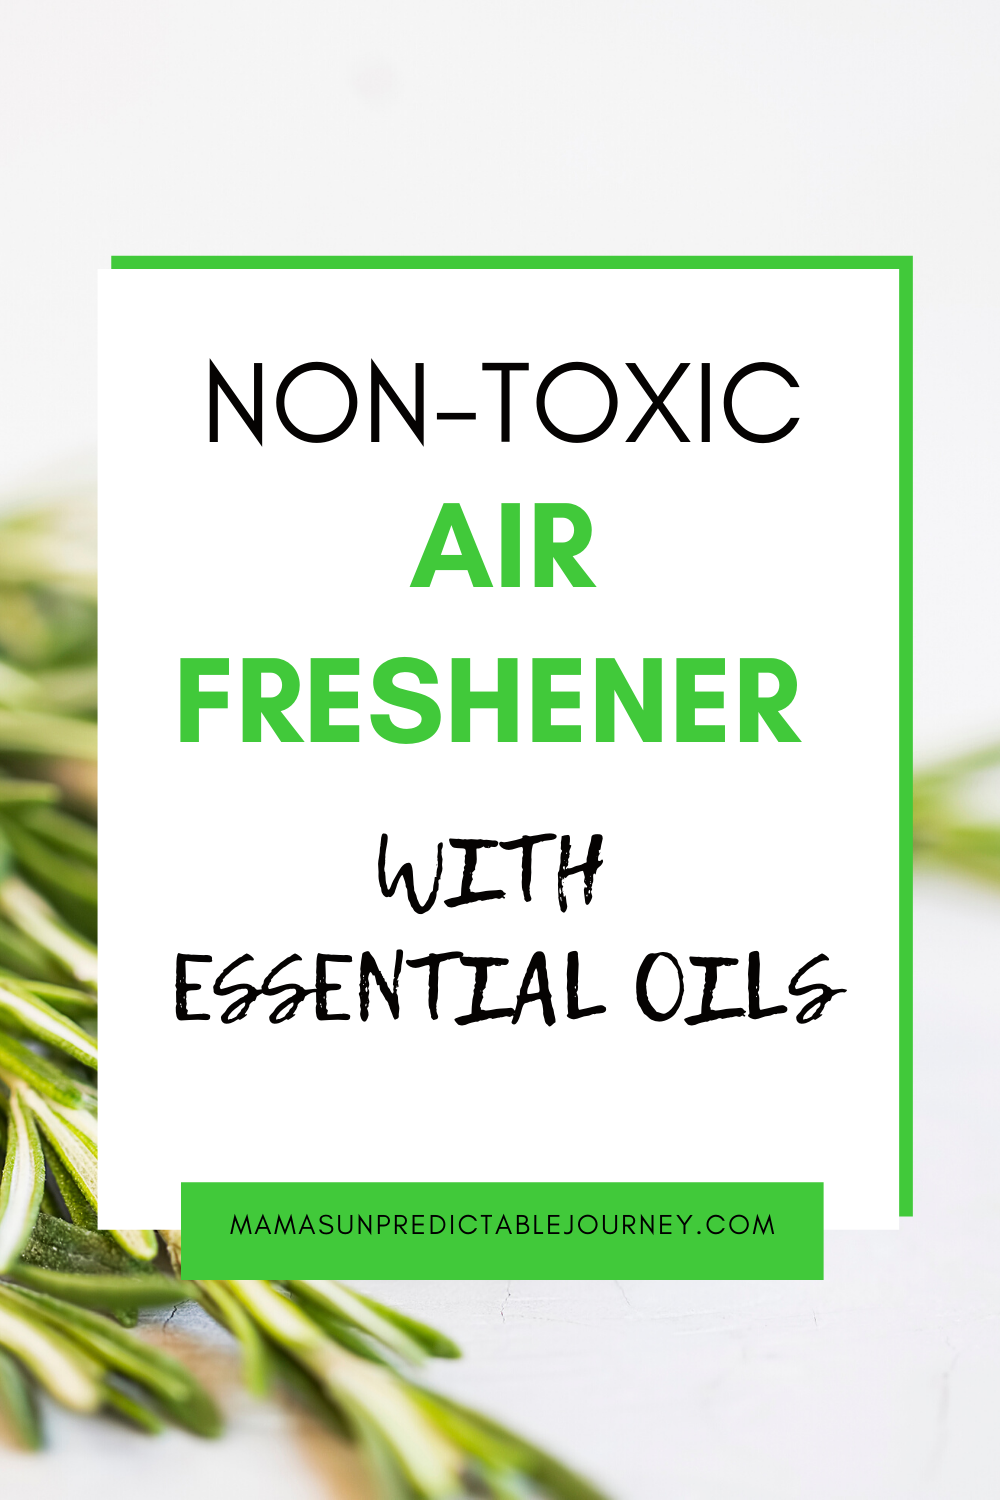 DIY NonToxic Air Freshener Spray With Essential Oils in